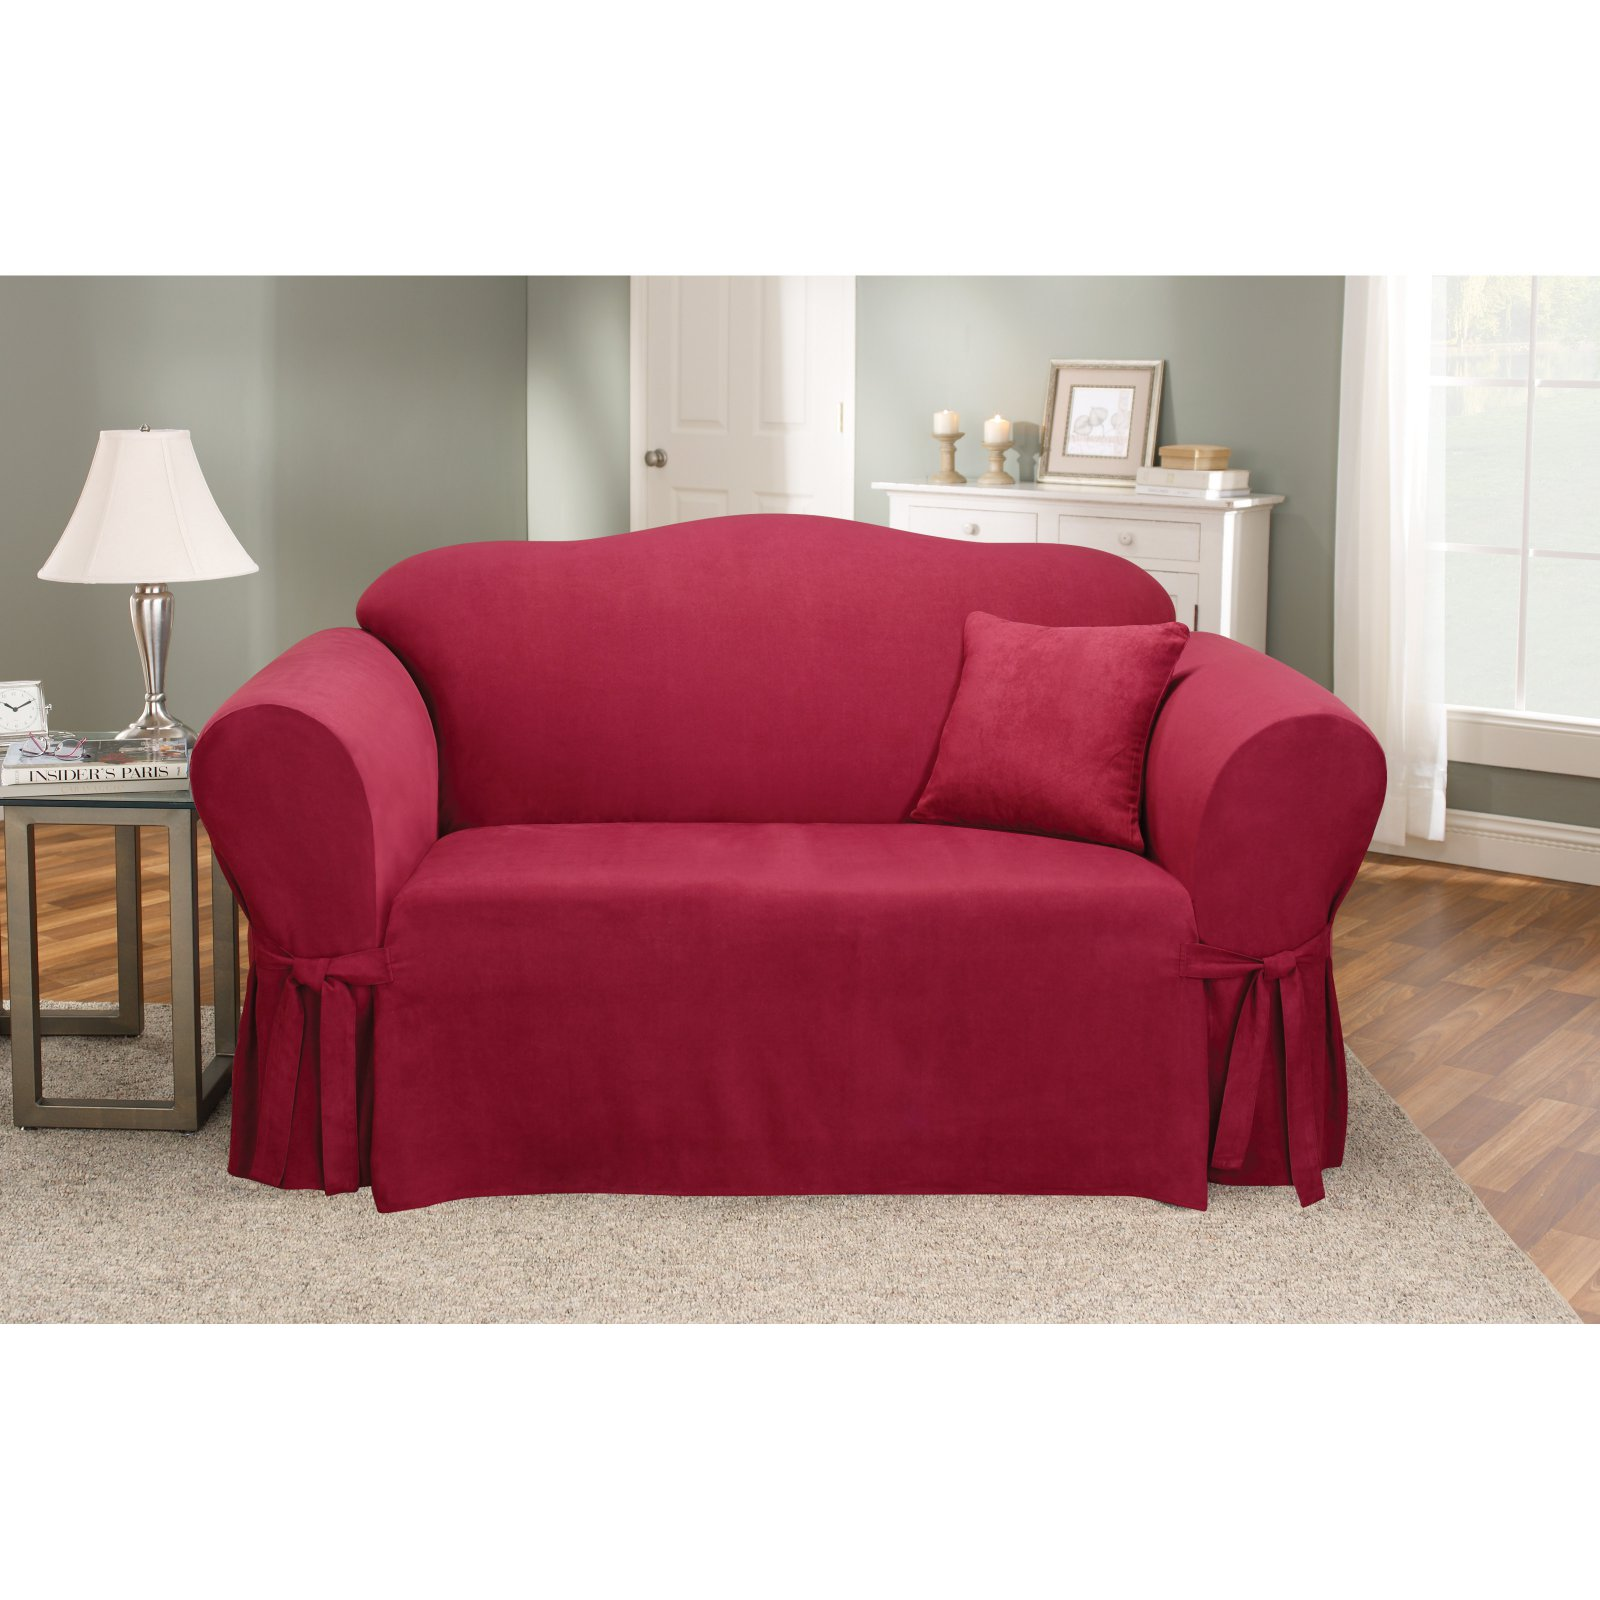 Charmant Sure Fit Soft Suede Sofa Slipcover